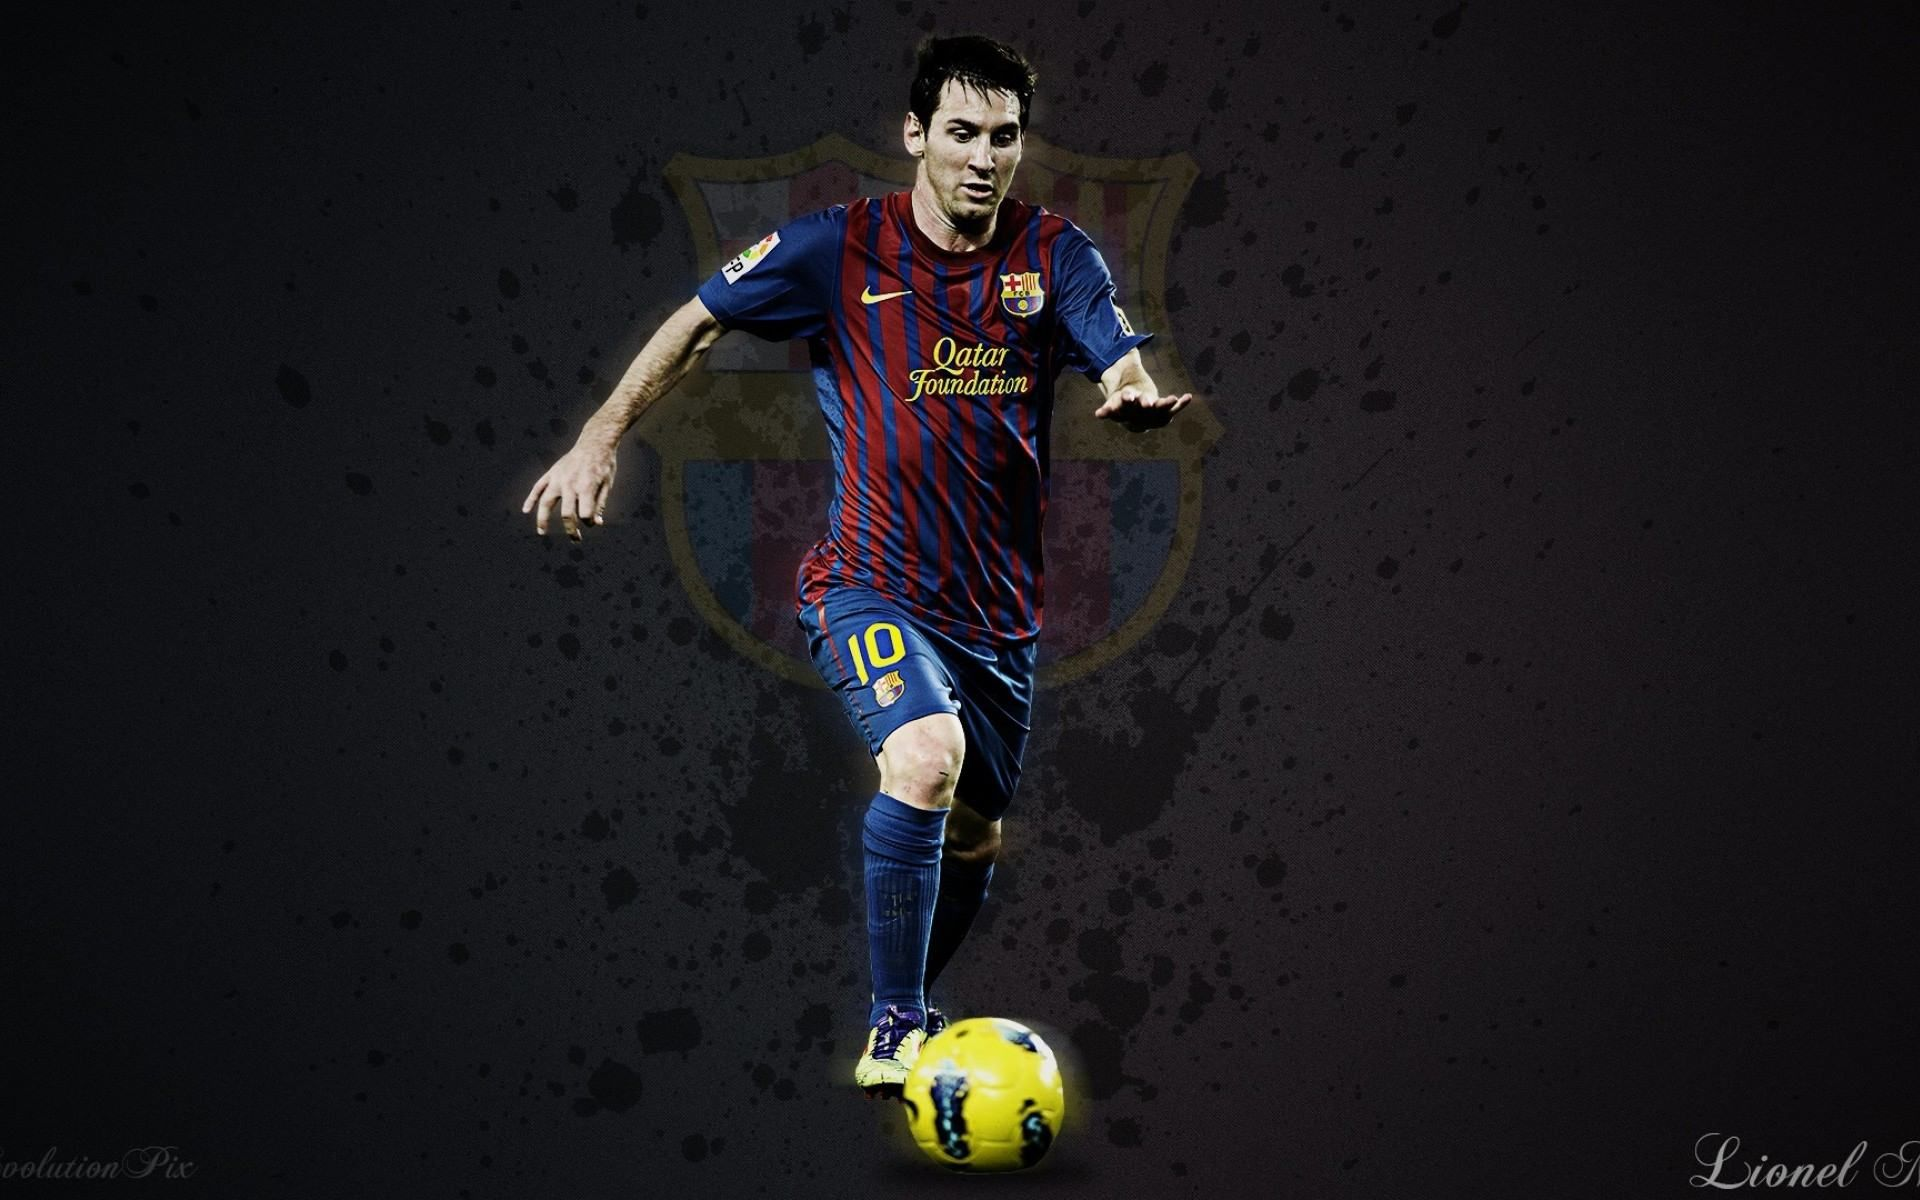 lionel messi wallpapers hd download free | hd wallpapers | pinterest